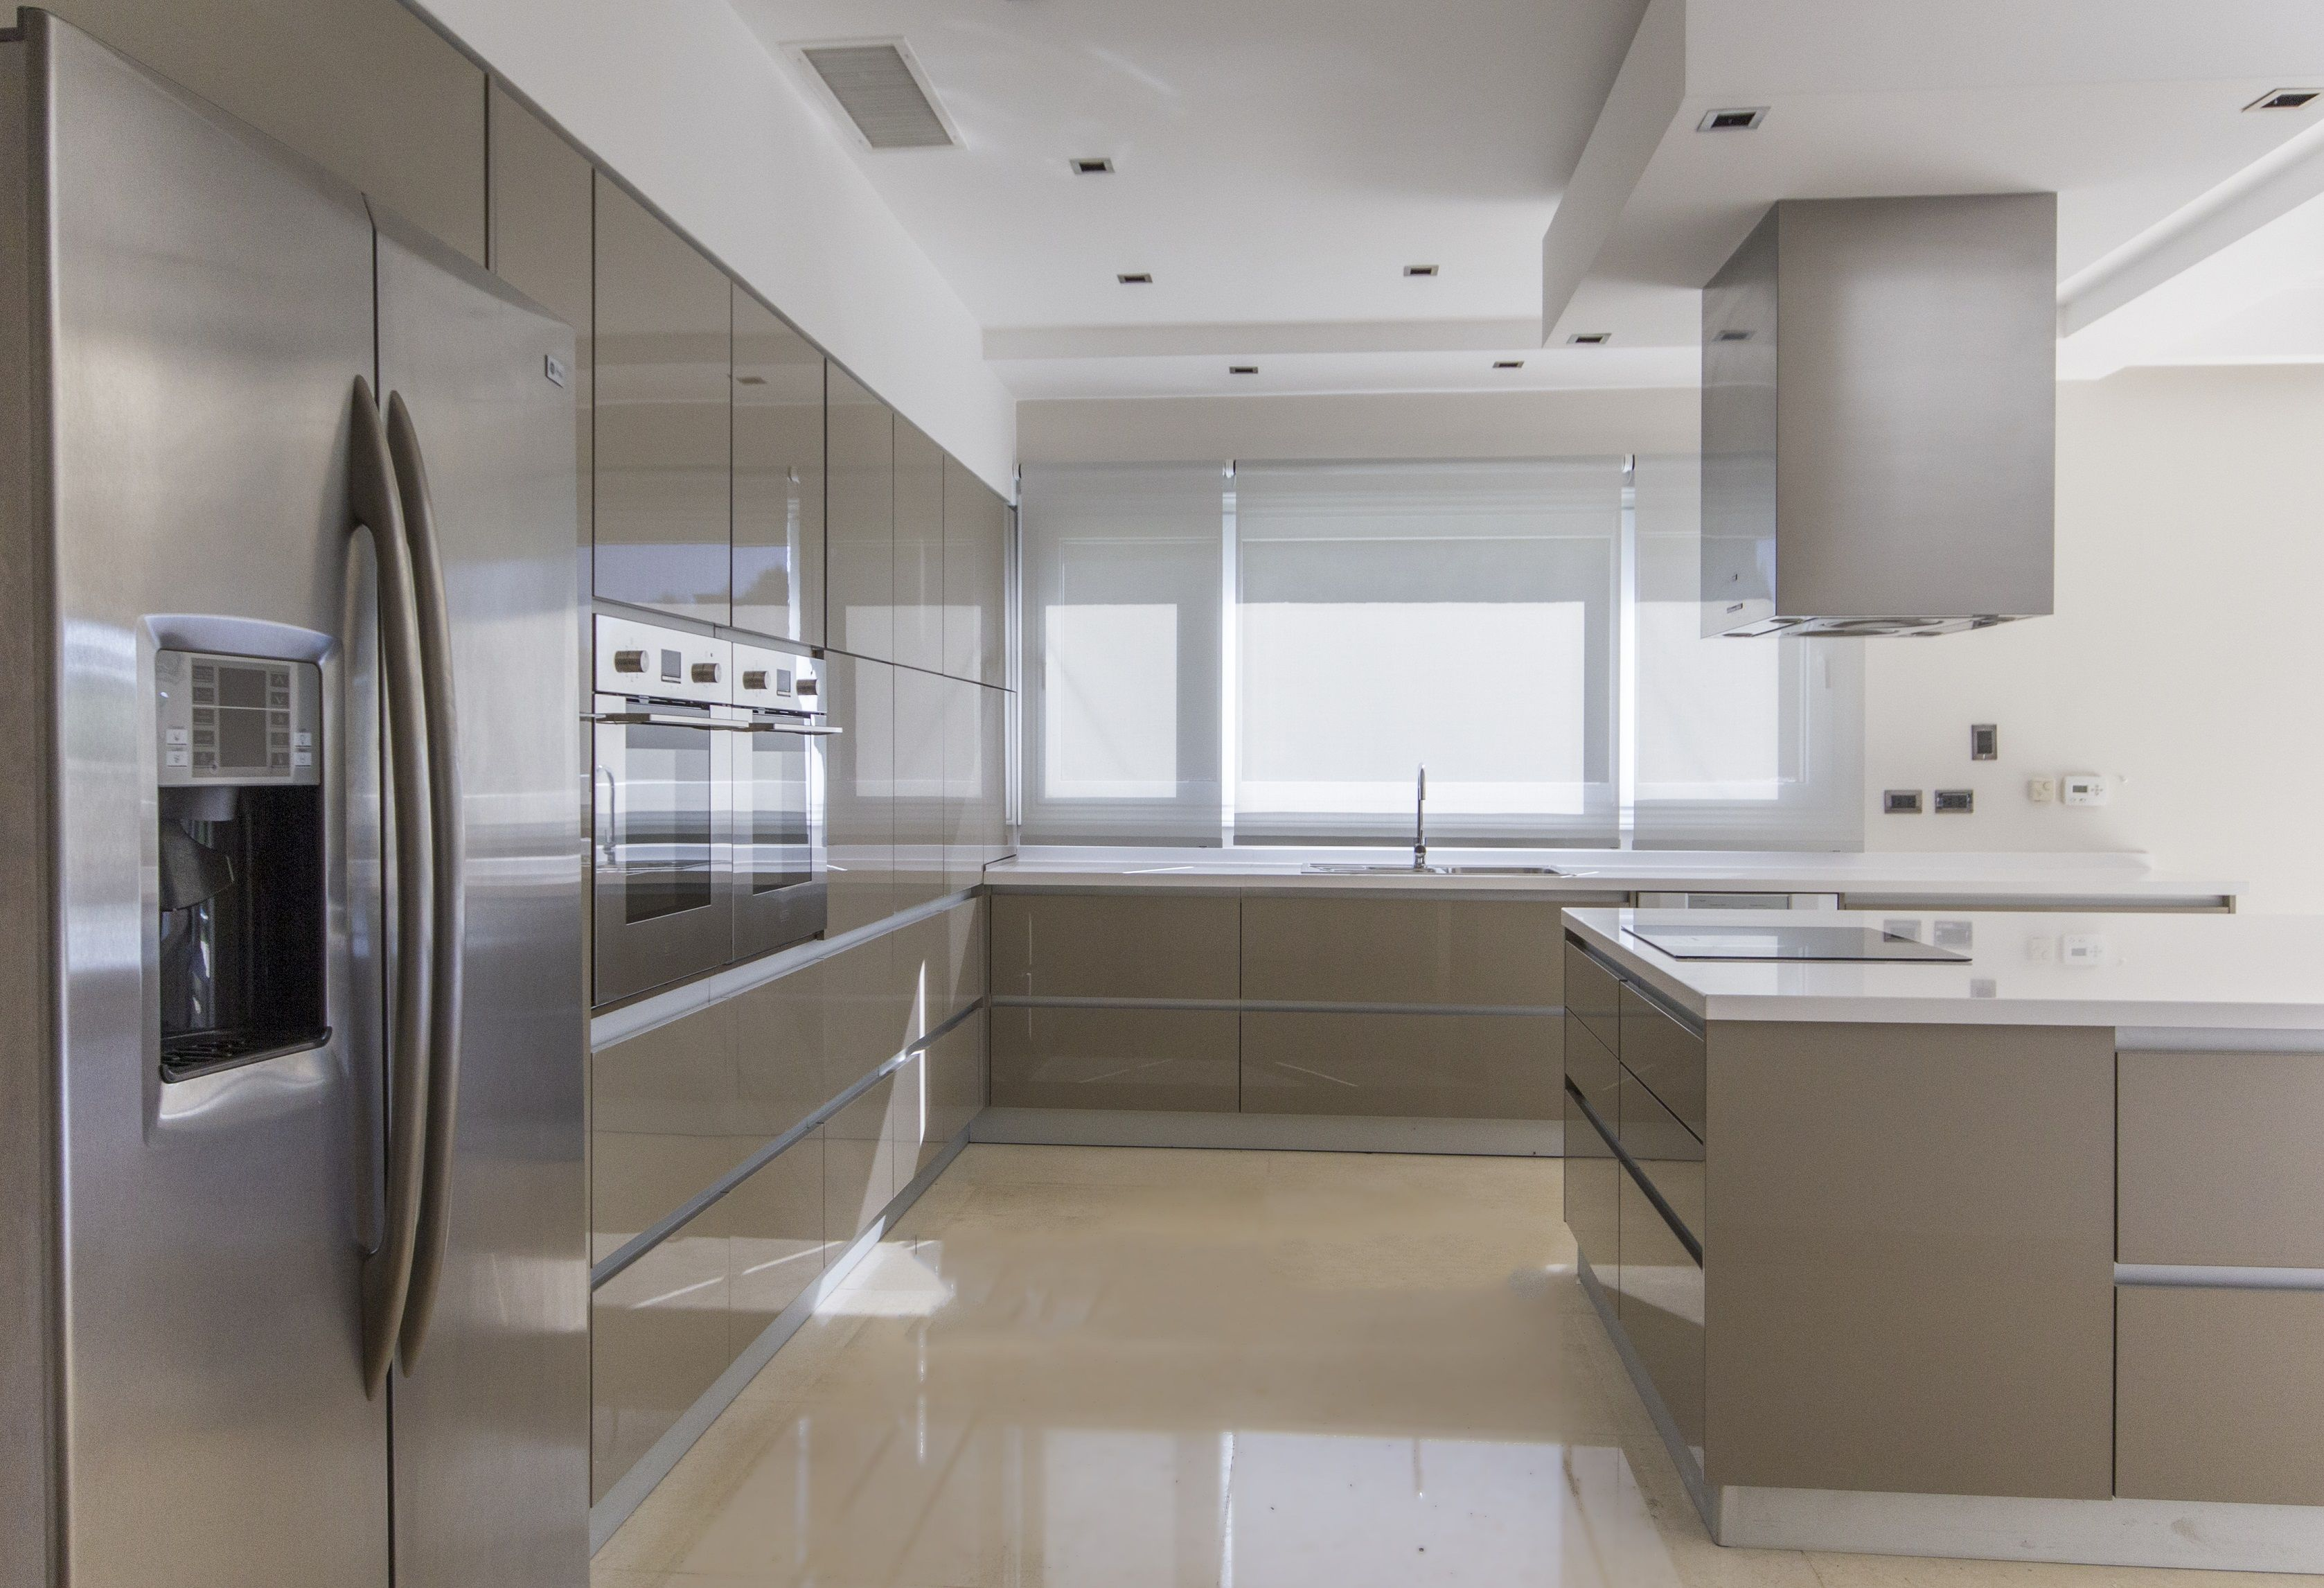 Want High Gloss Doors With High Quality Get Rauvisio Brilliant Cabinet Doors With Superior Color Modern Kitchen Cabinet Design Kitchen Doors Kitchen Doors Diy